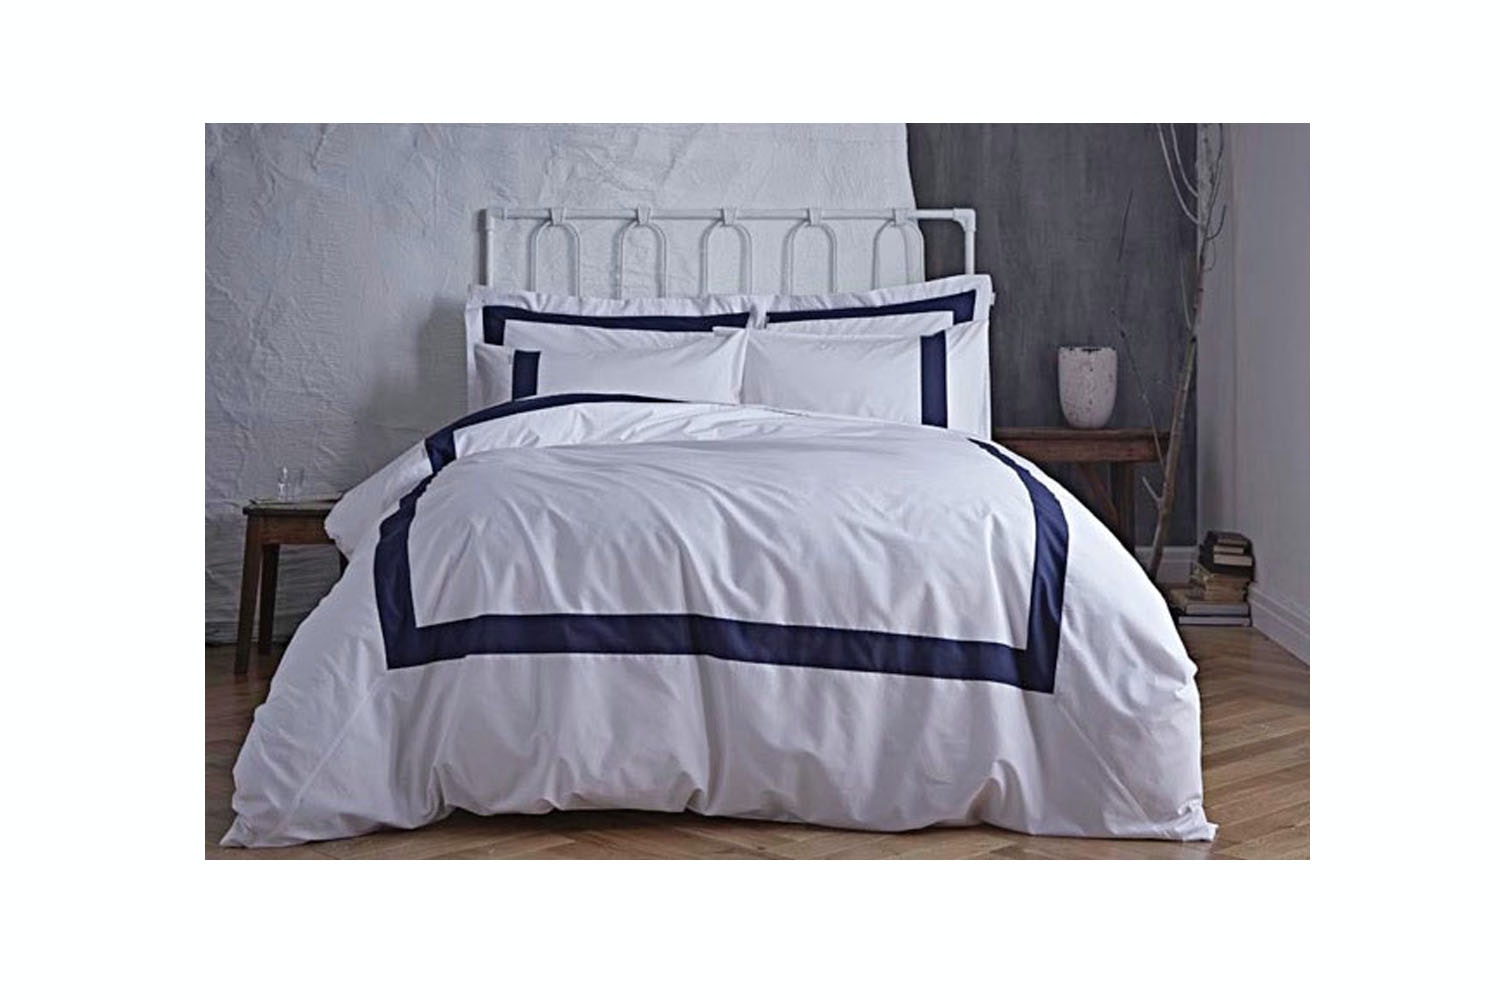 BDB35766RSQS,Tailored, Navy,Quiltset, Double,duvet,cover,Single